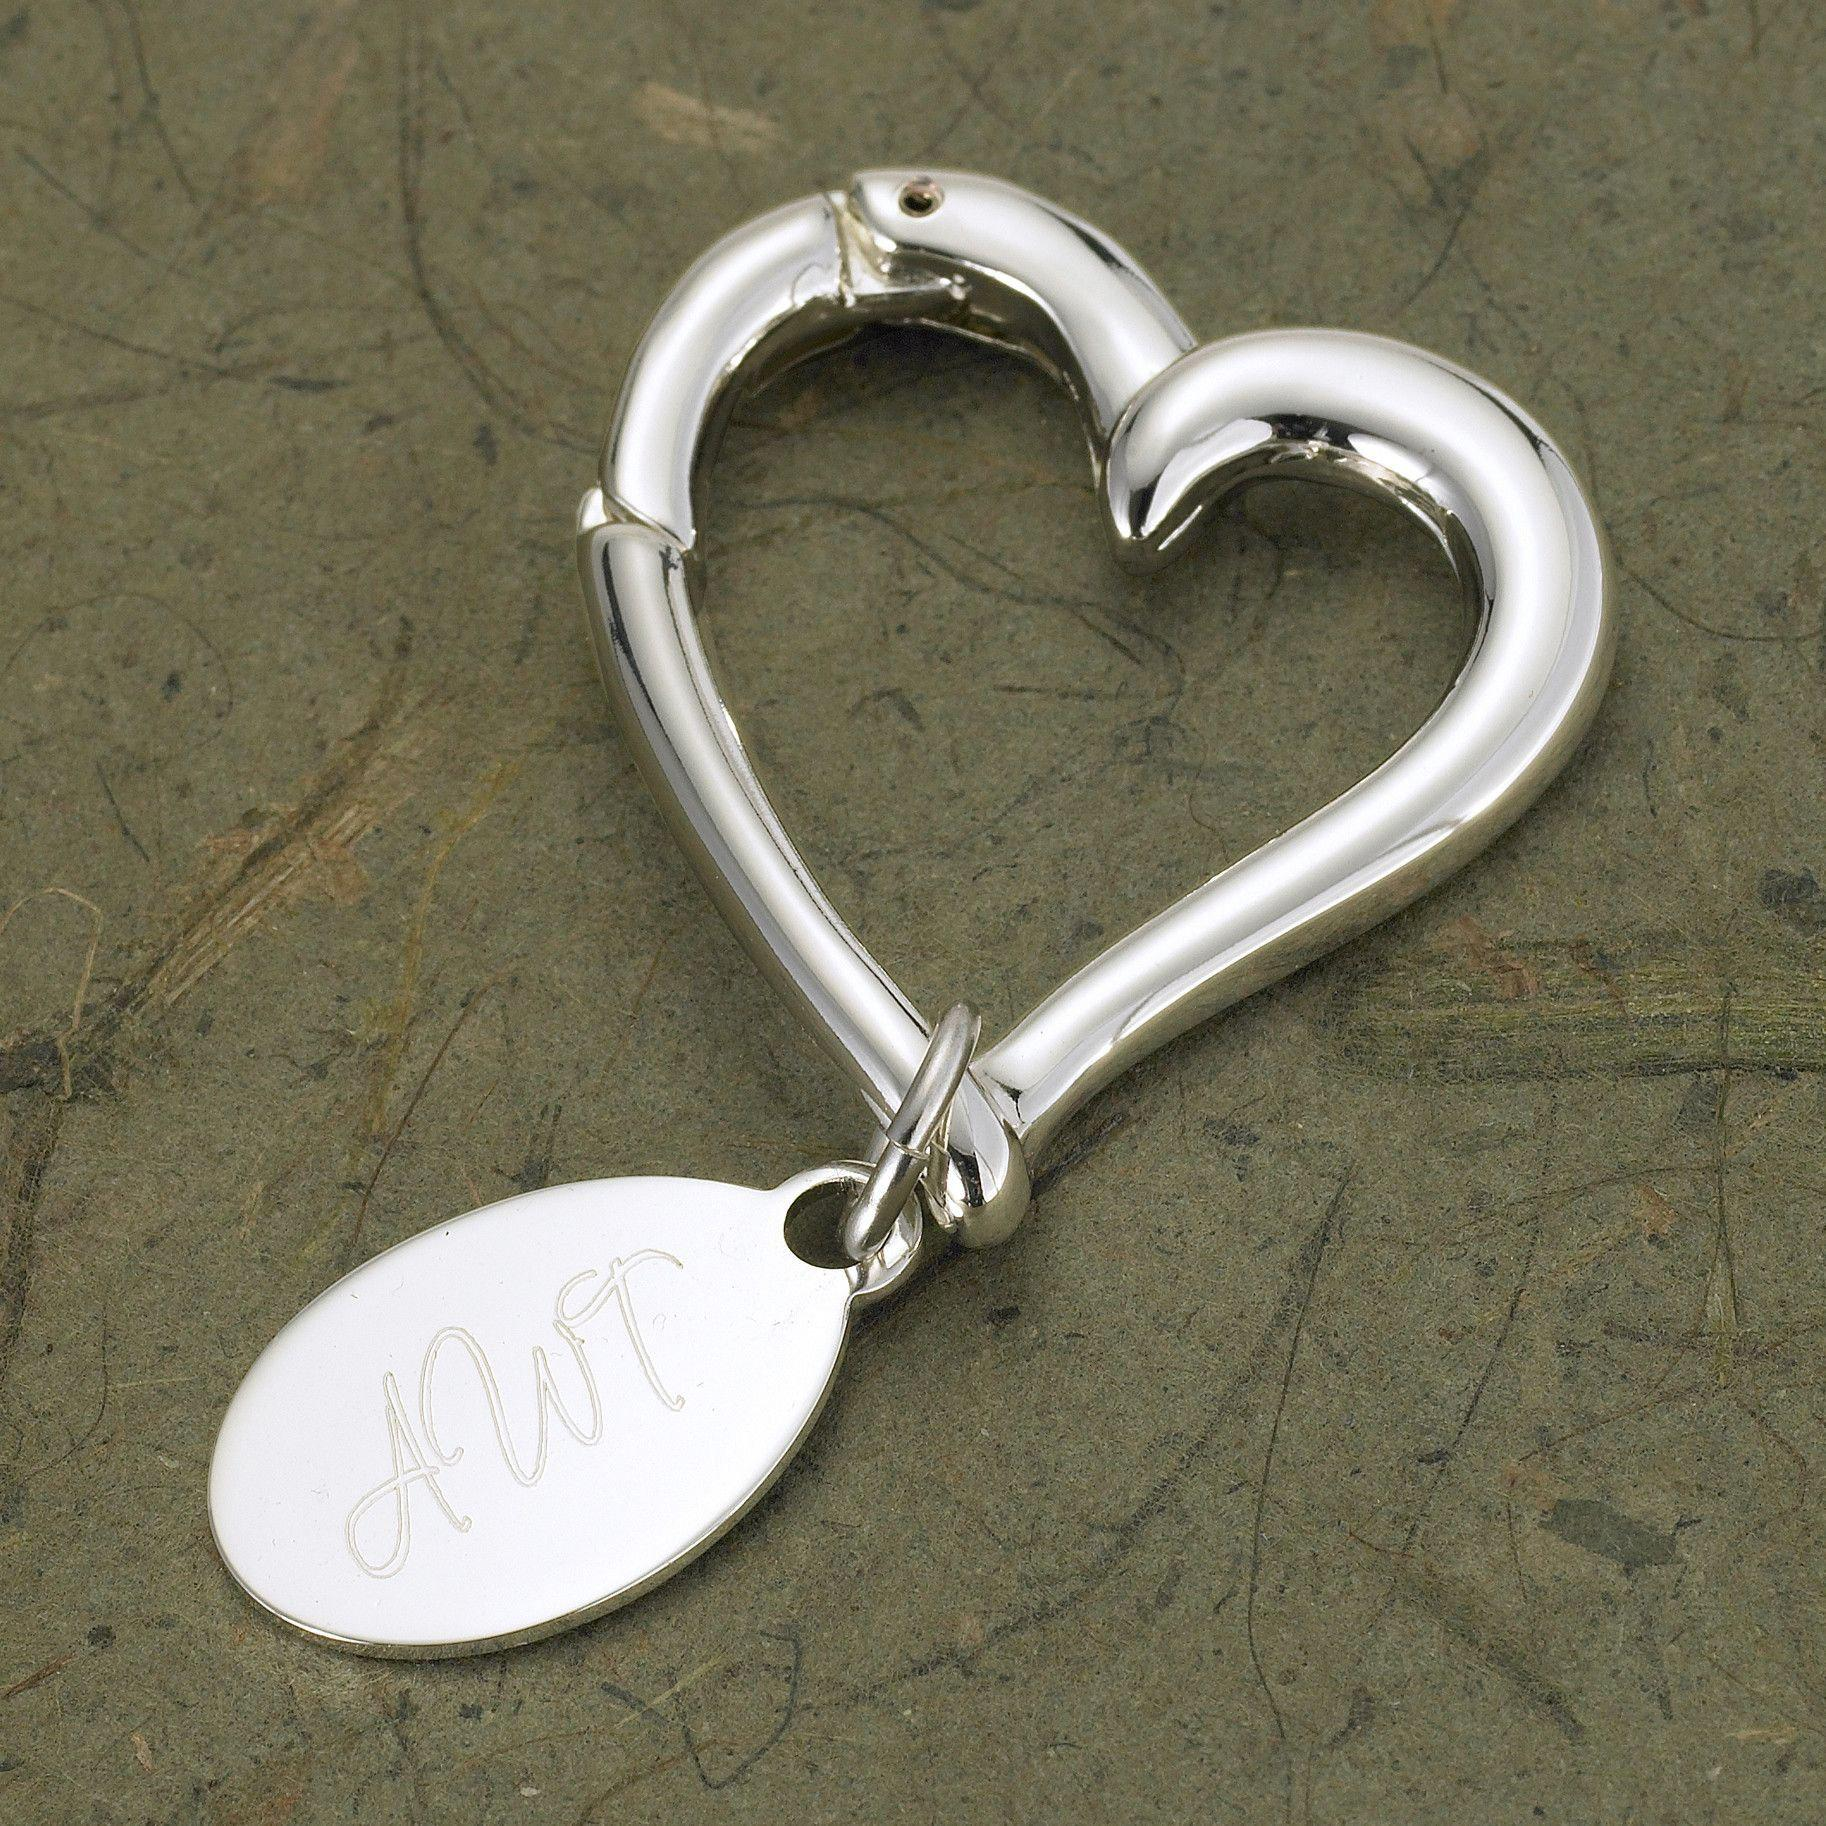 Personalized-Keychain-Heart-Oval-Tag-Birthday-Gifts-for-Her